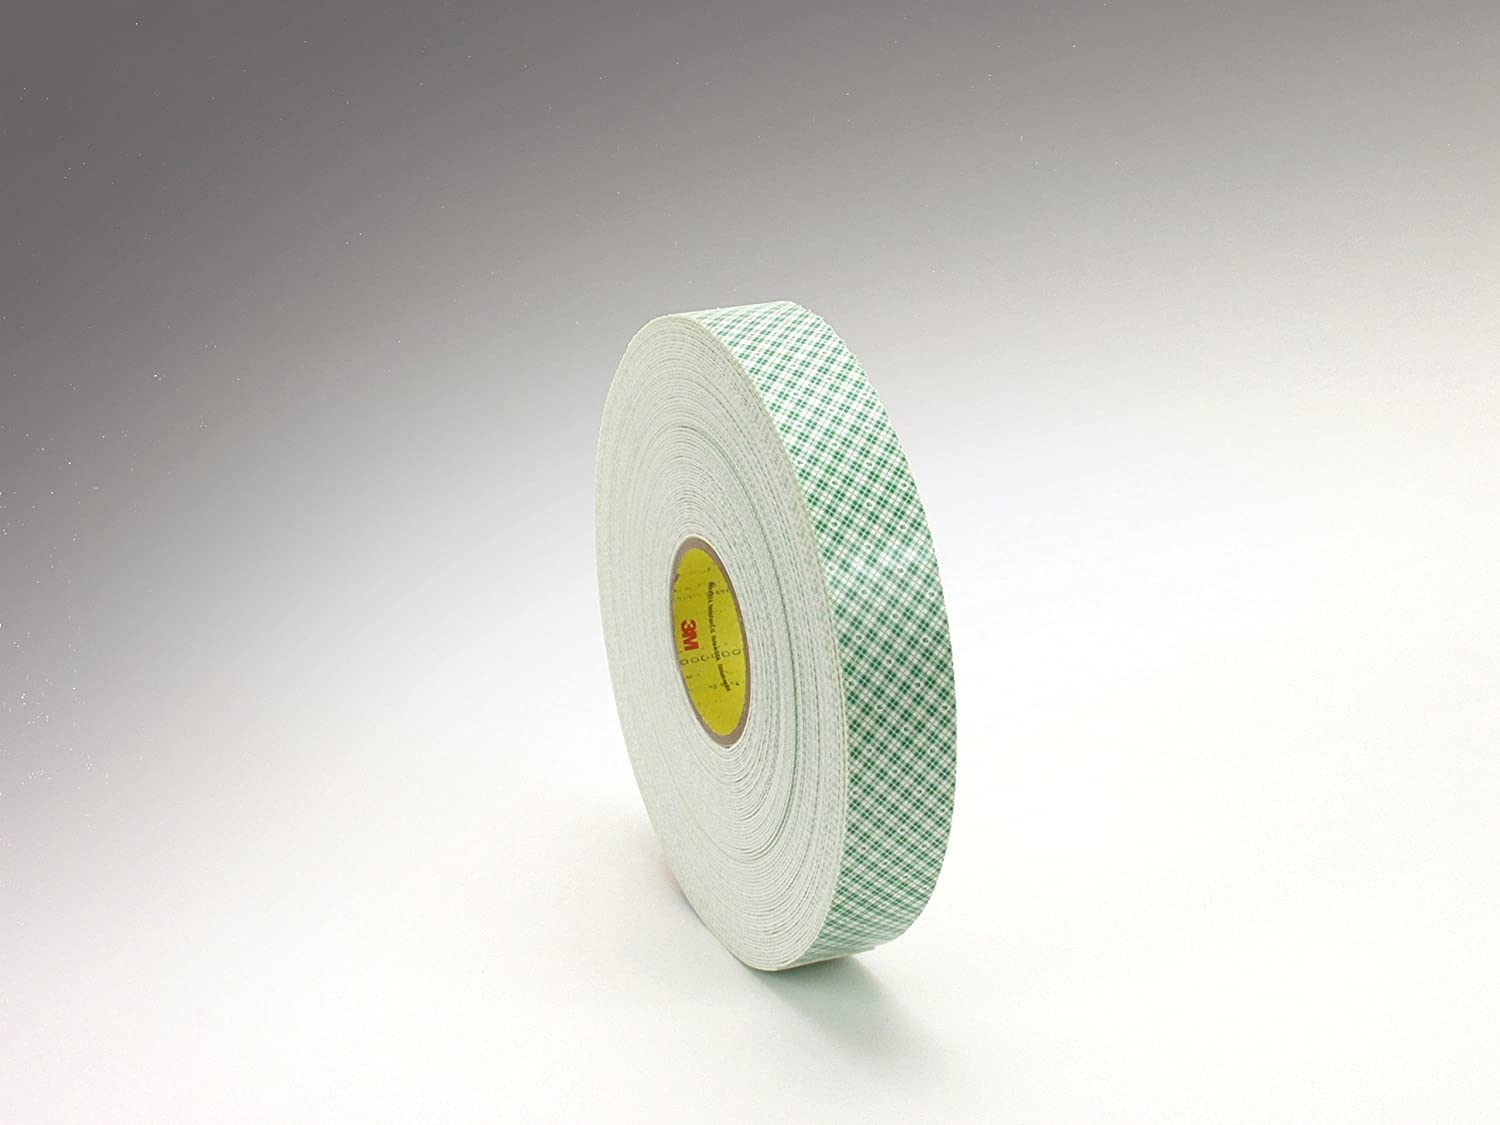 3M Double Coated Urethane Foam Tape 4016 36 1 in White Virginia Beach Mall y New product! New type x Off